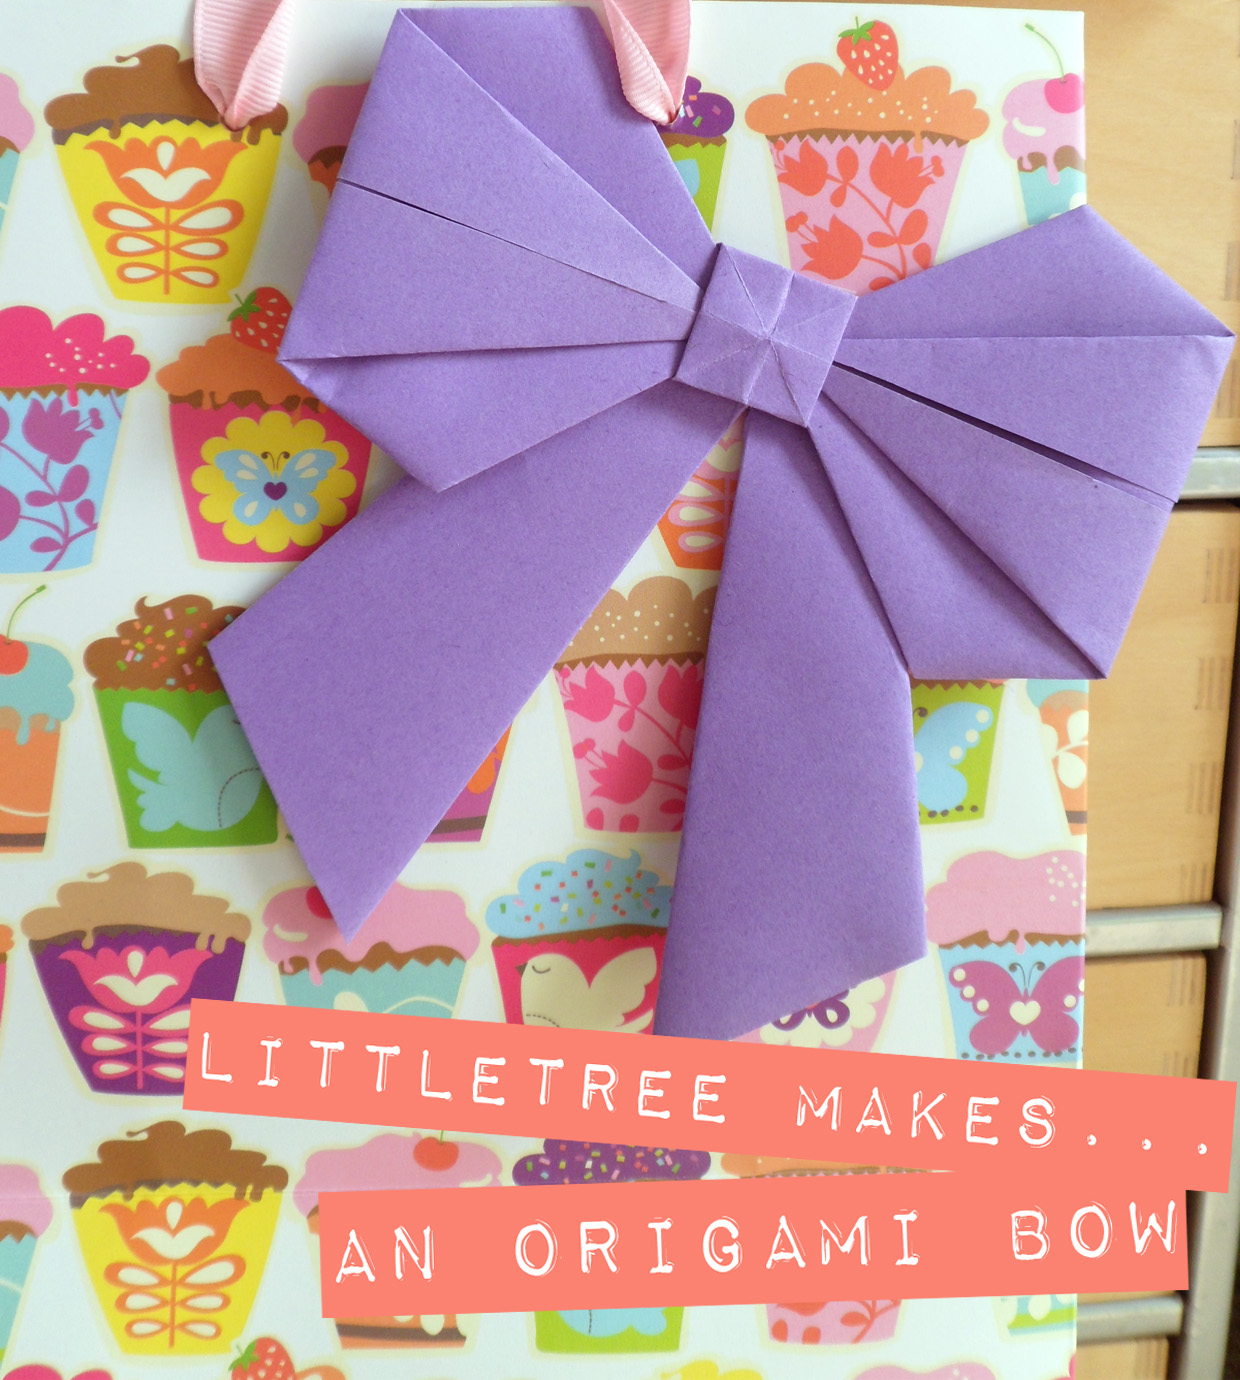 littletree designs: littletree makes...an origami bow - photo#23